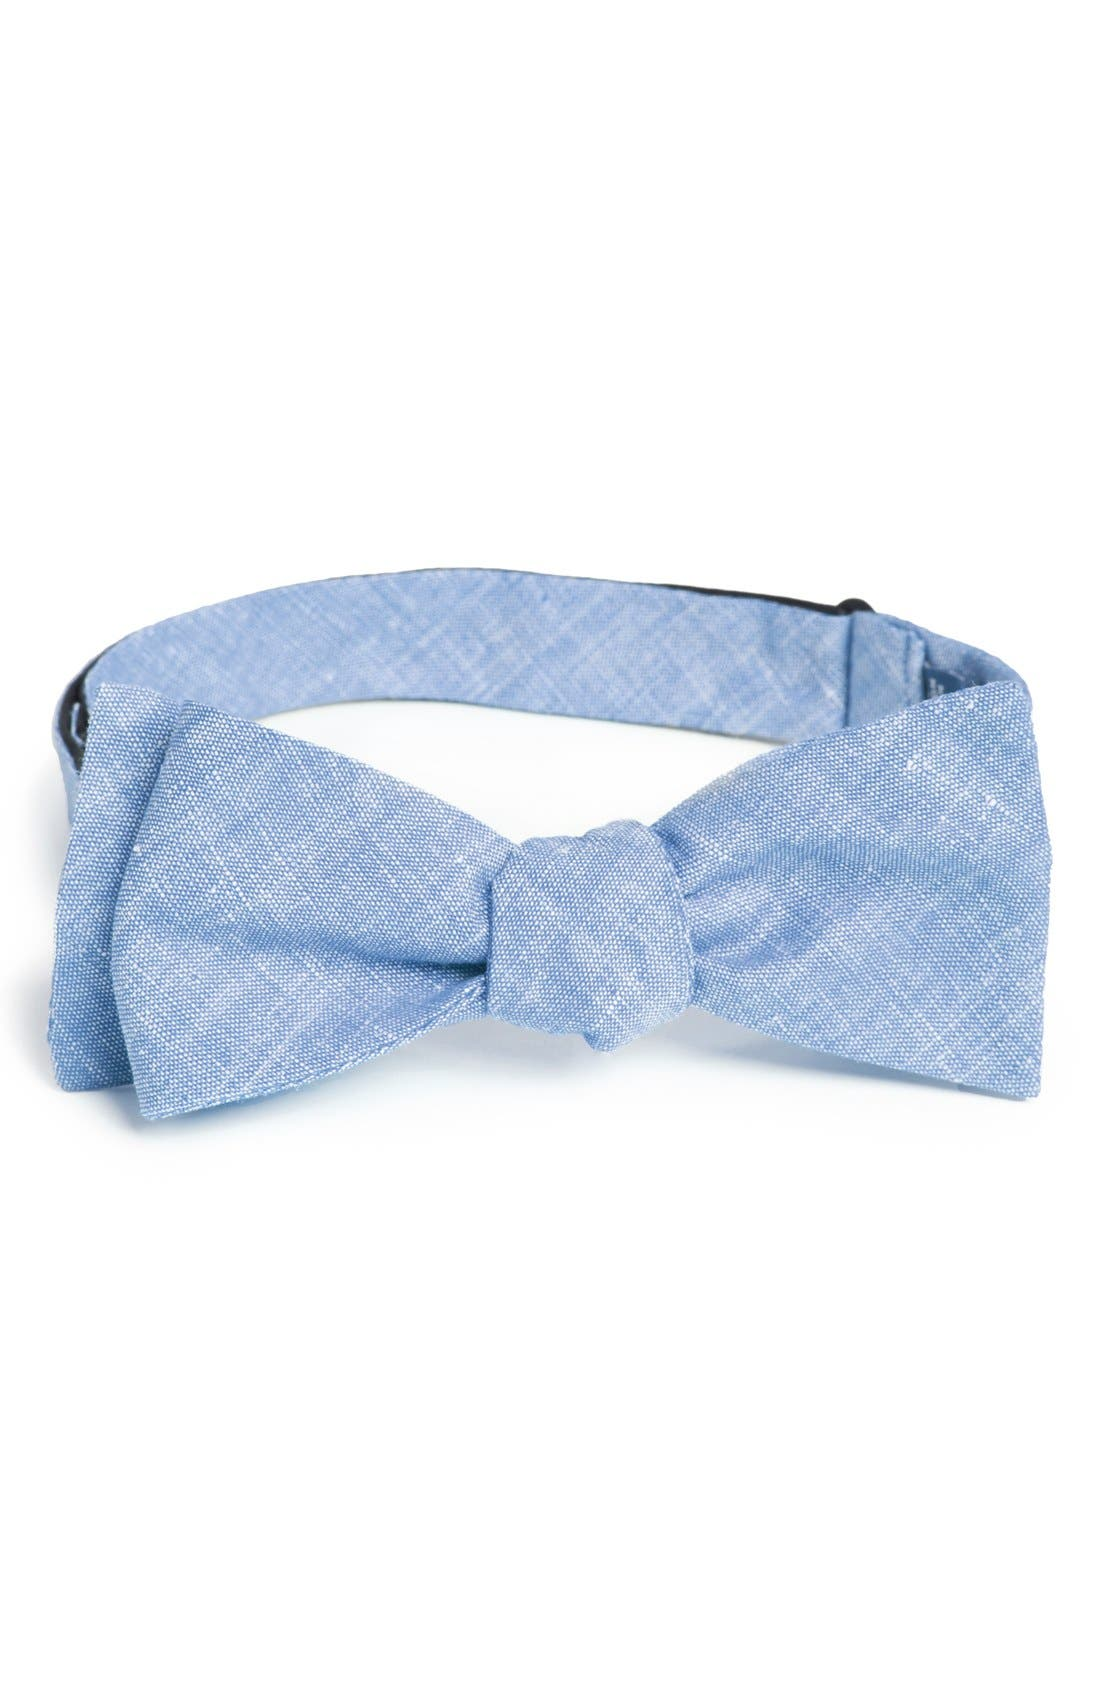 Main Image - Original Penguin Cotton Bow Tie